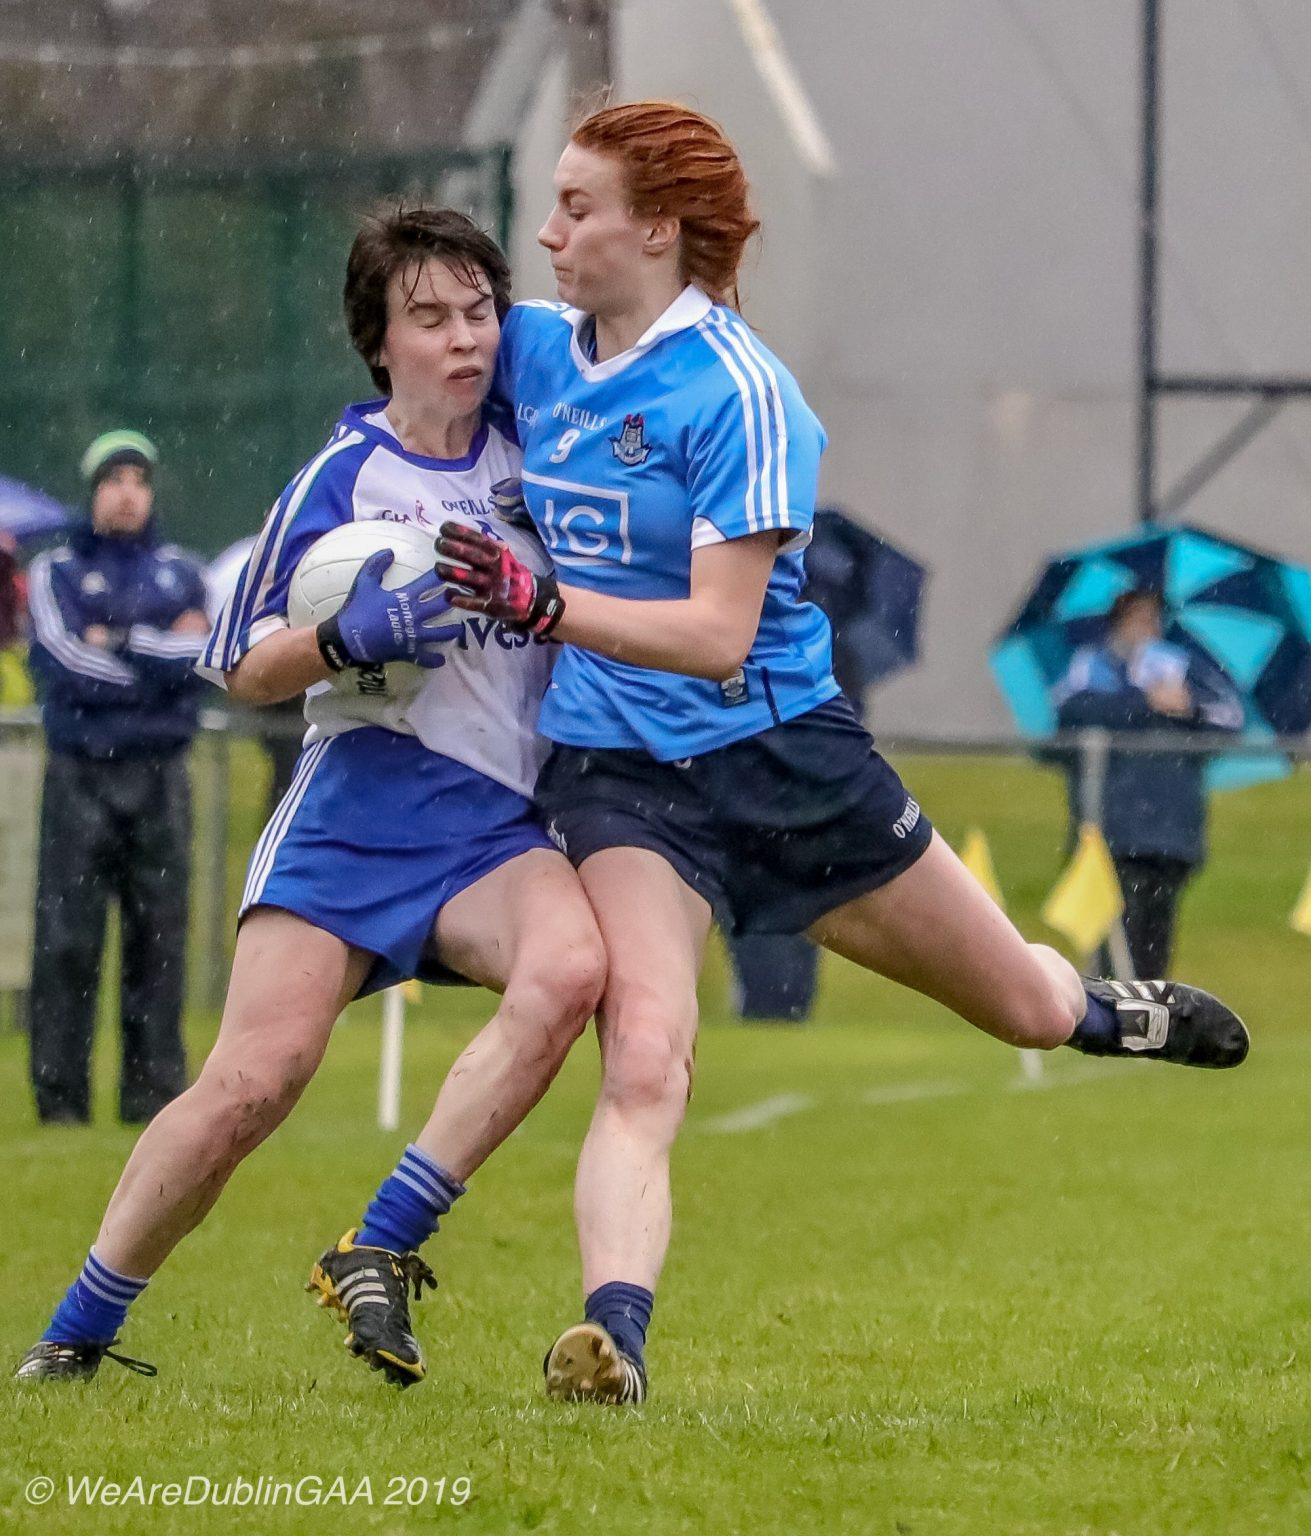 Dublin Ladies Footballer in a sky blue jersey and navy shorts tackled a Monaghan player in a white jersey with dark blue sleeves and dark blue shorts both sides face each other this weekend and the Inter County Update on the fixture venue is DCU